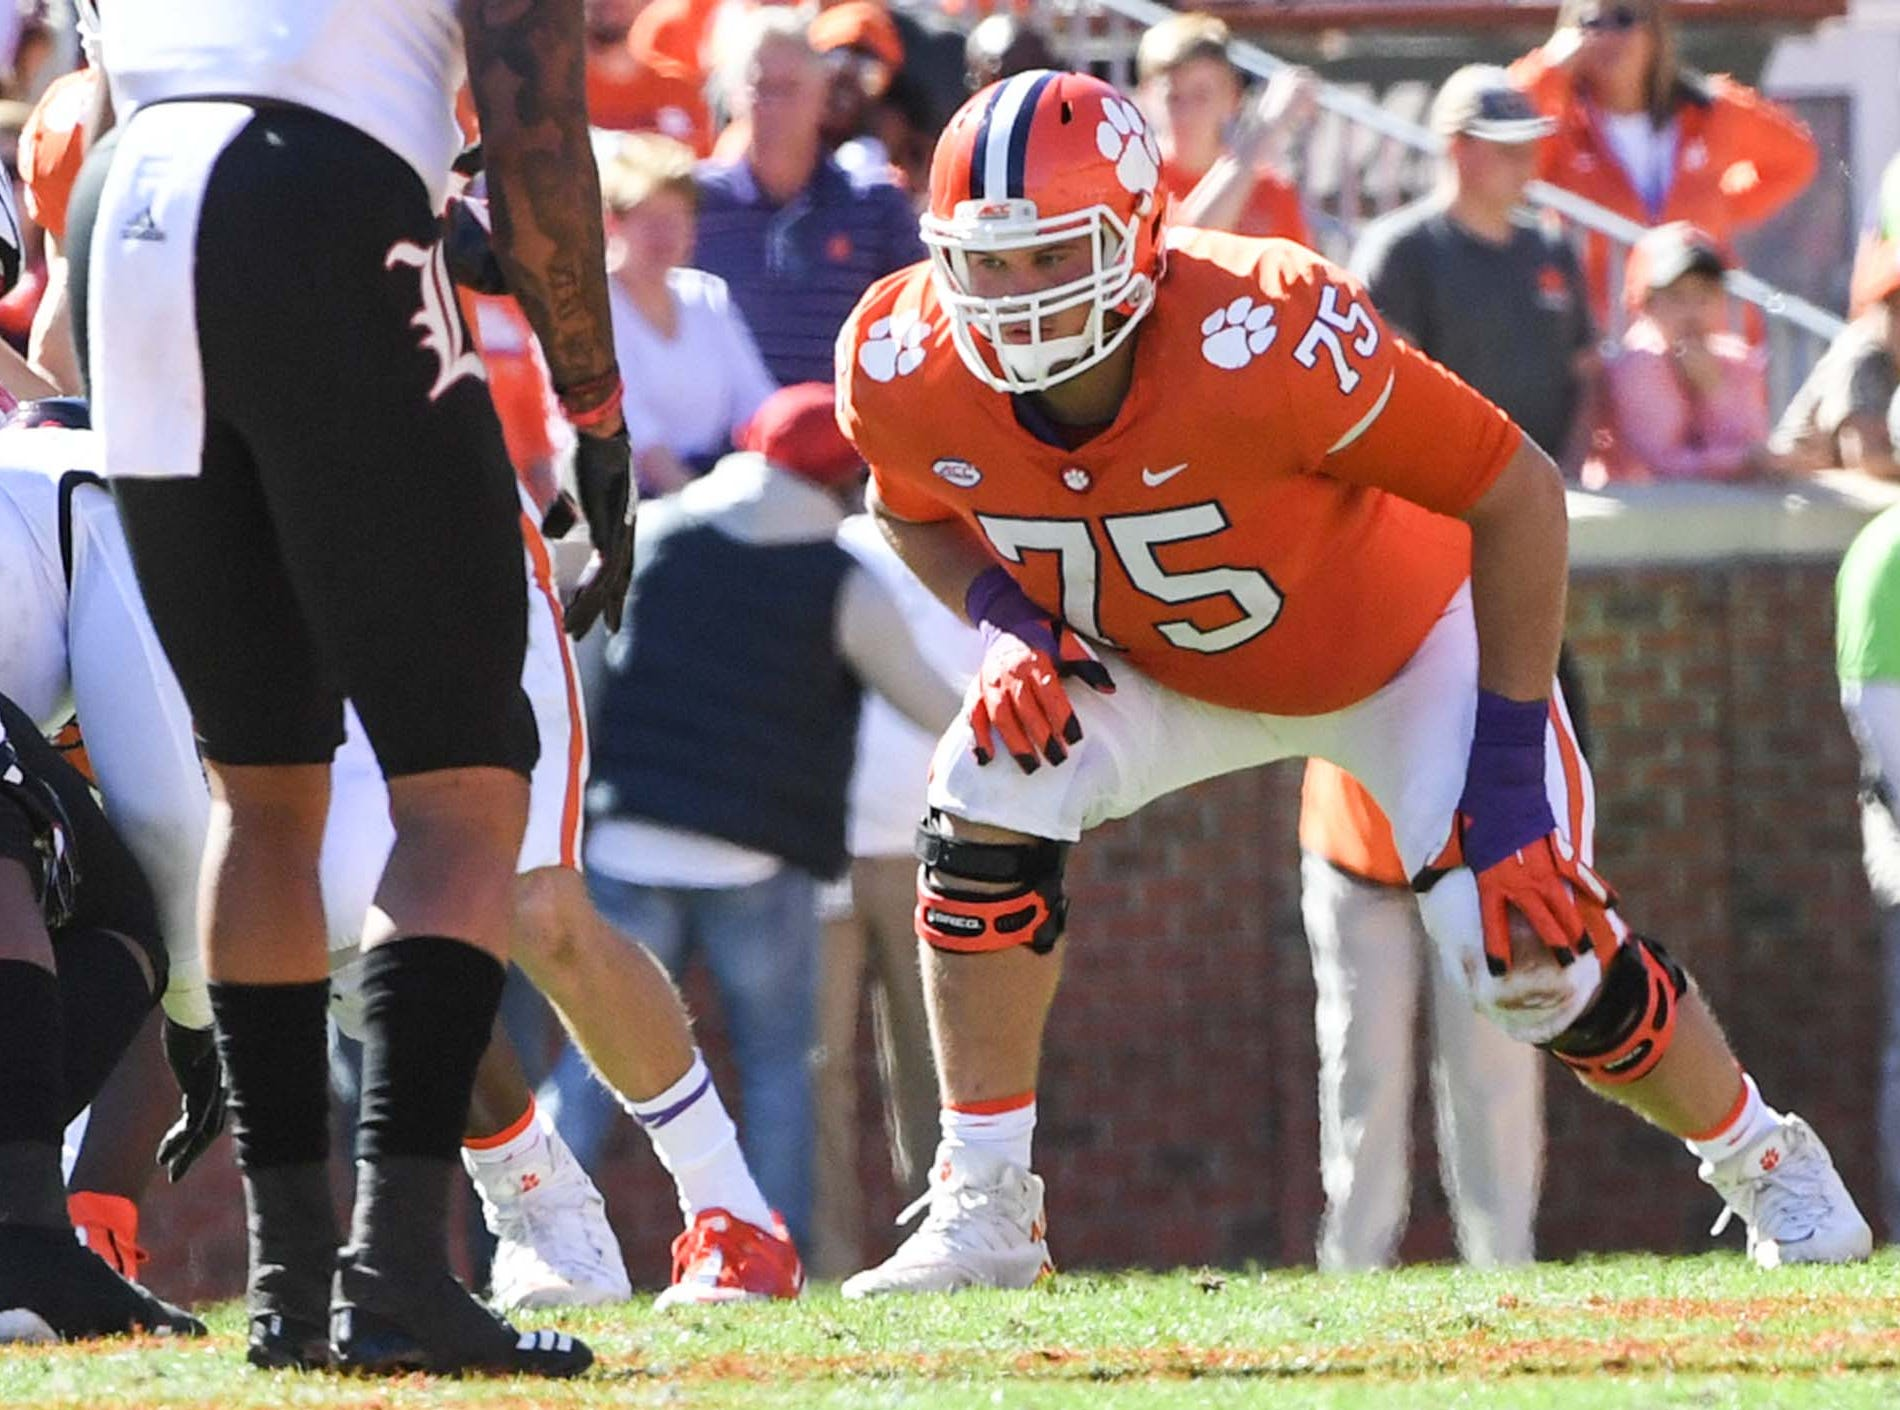 Clemson offensive lineman Mitch Hyatt (75) lines up against Louisville during the third quarter in Memorial Stadium on Saturday, November 3, 2018. Hyatt broke the record for most plays by any Clemson player in school history.